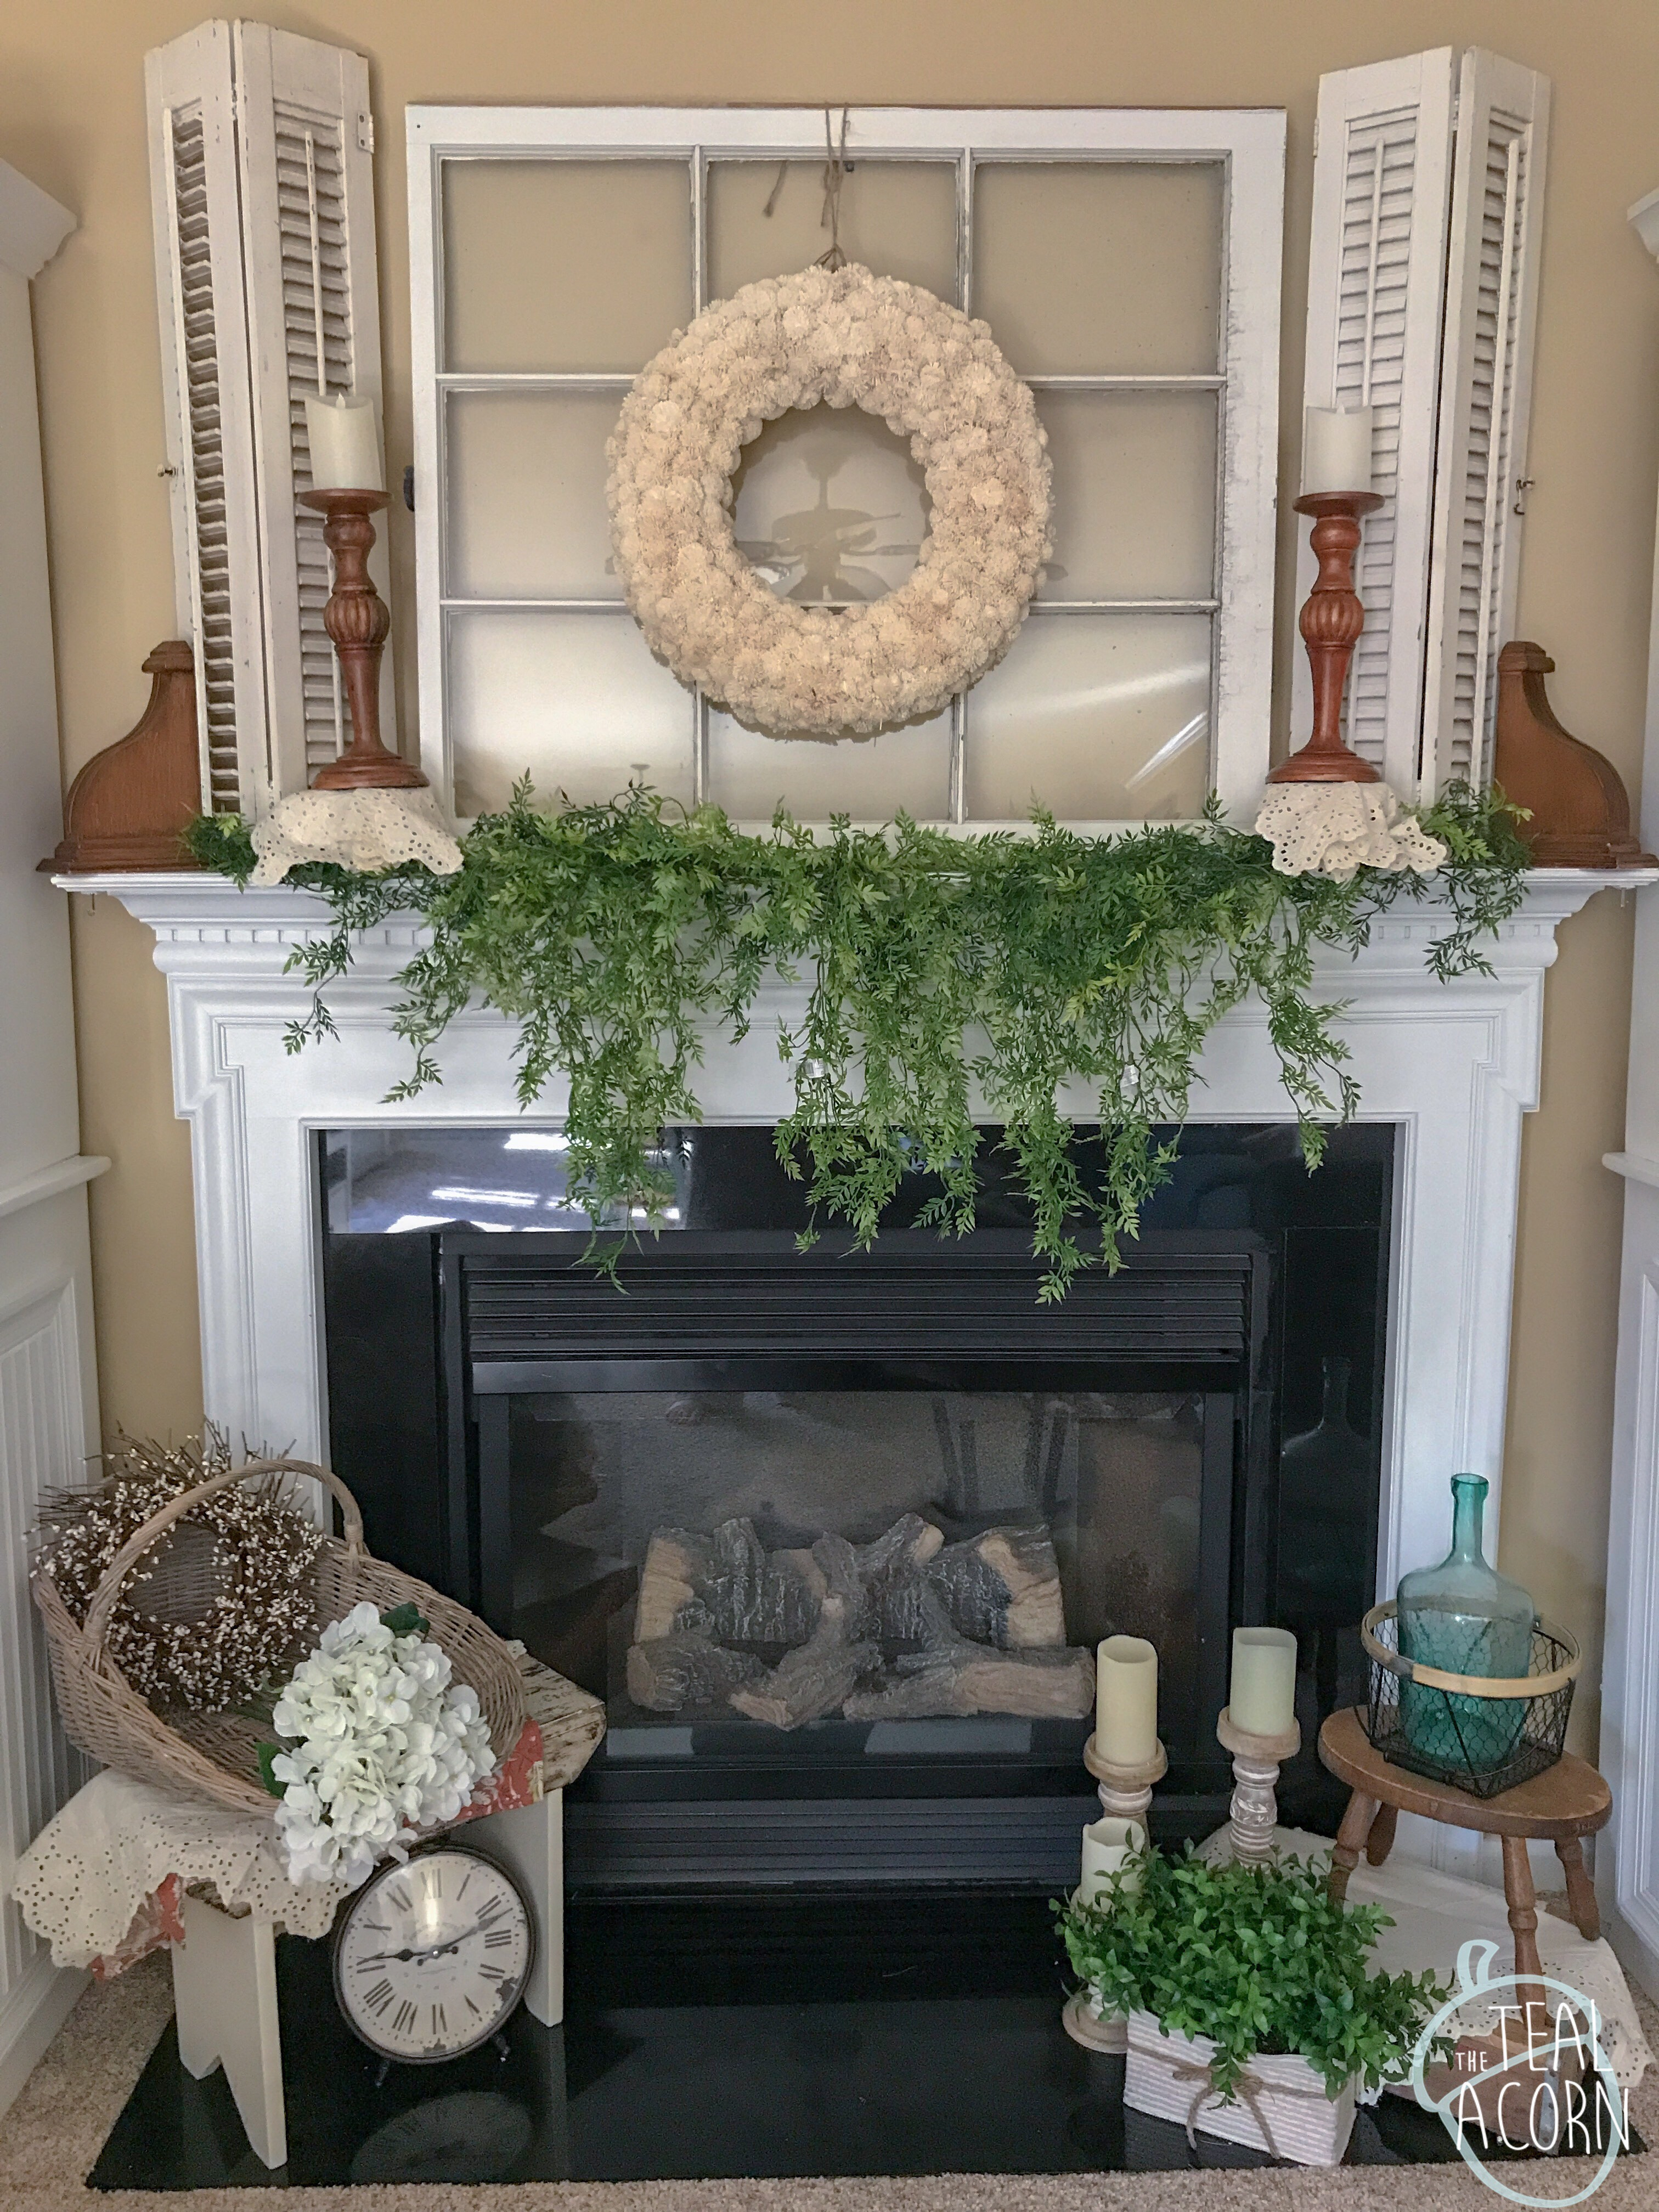 Spring mantle with draping ficus greenery, old window above mantle, and old shutters above mantle